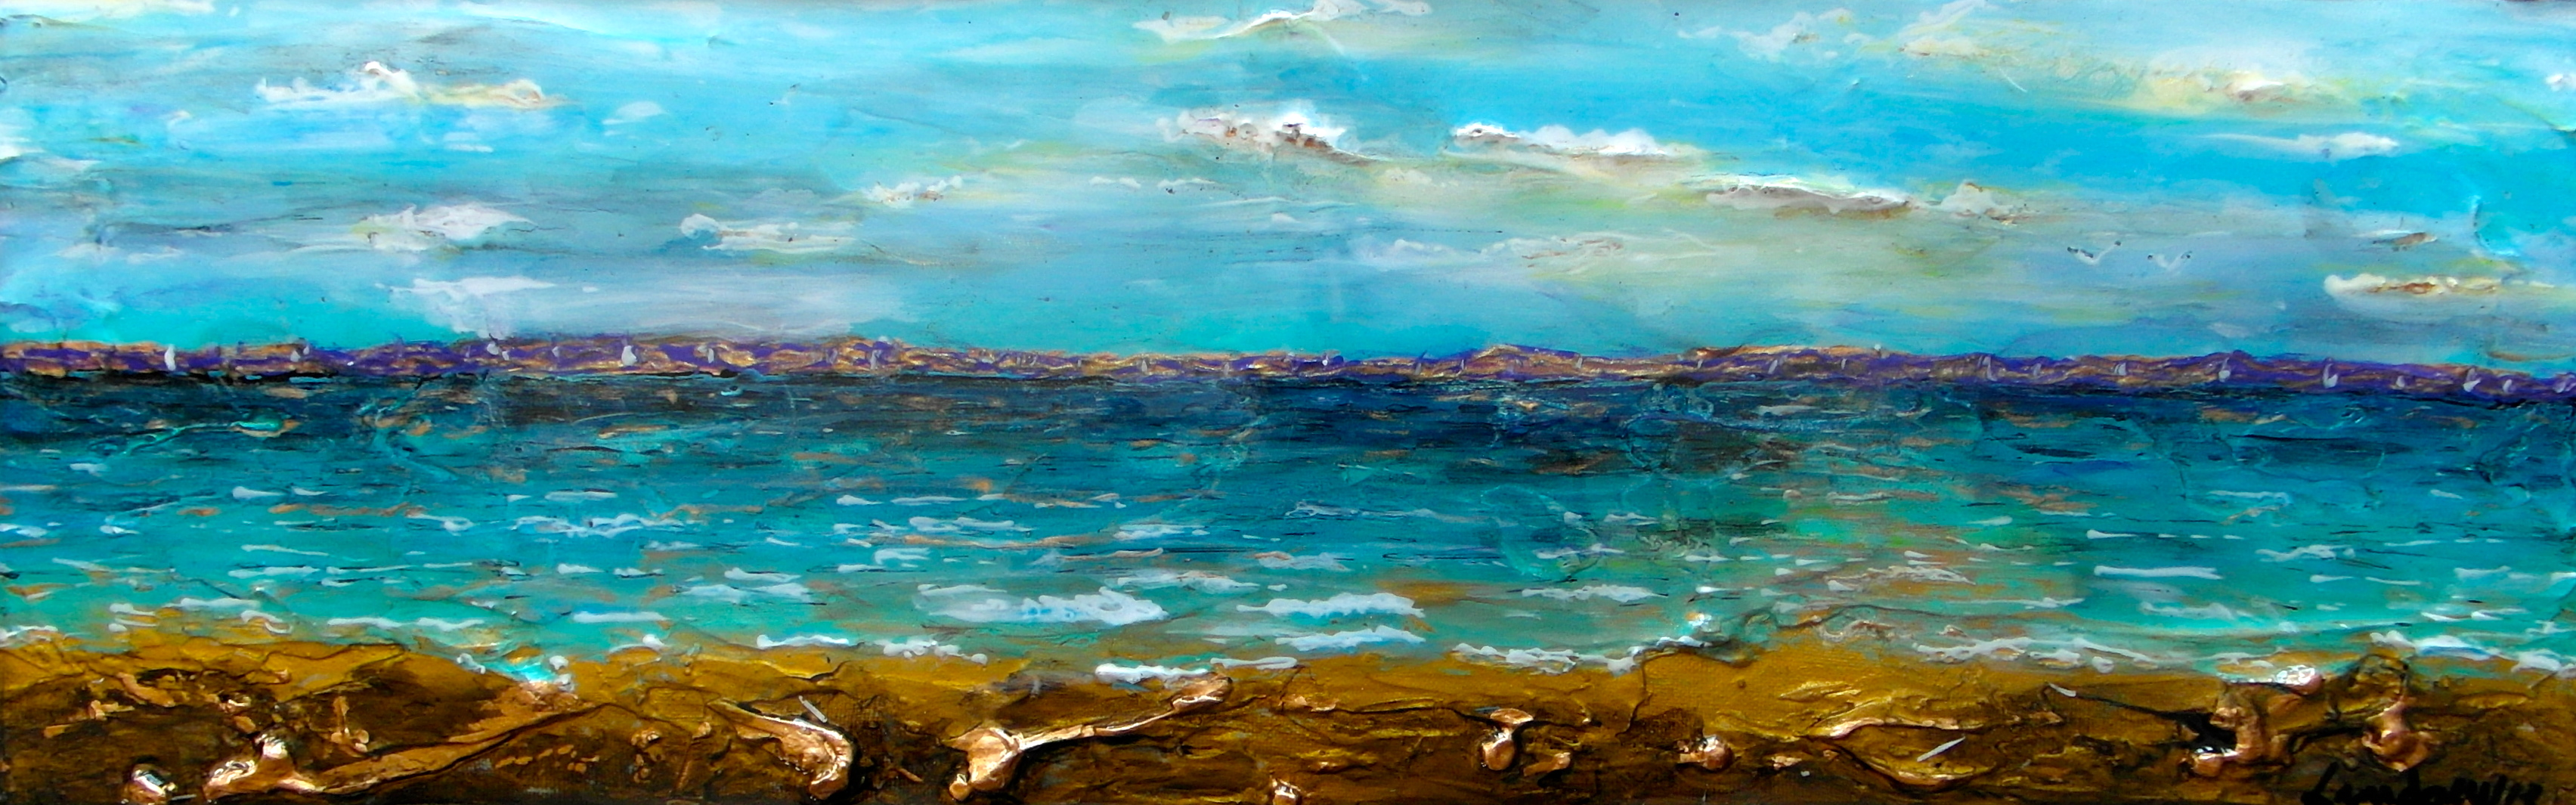 abstract seascape painting beach